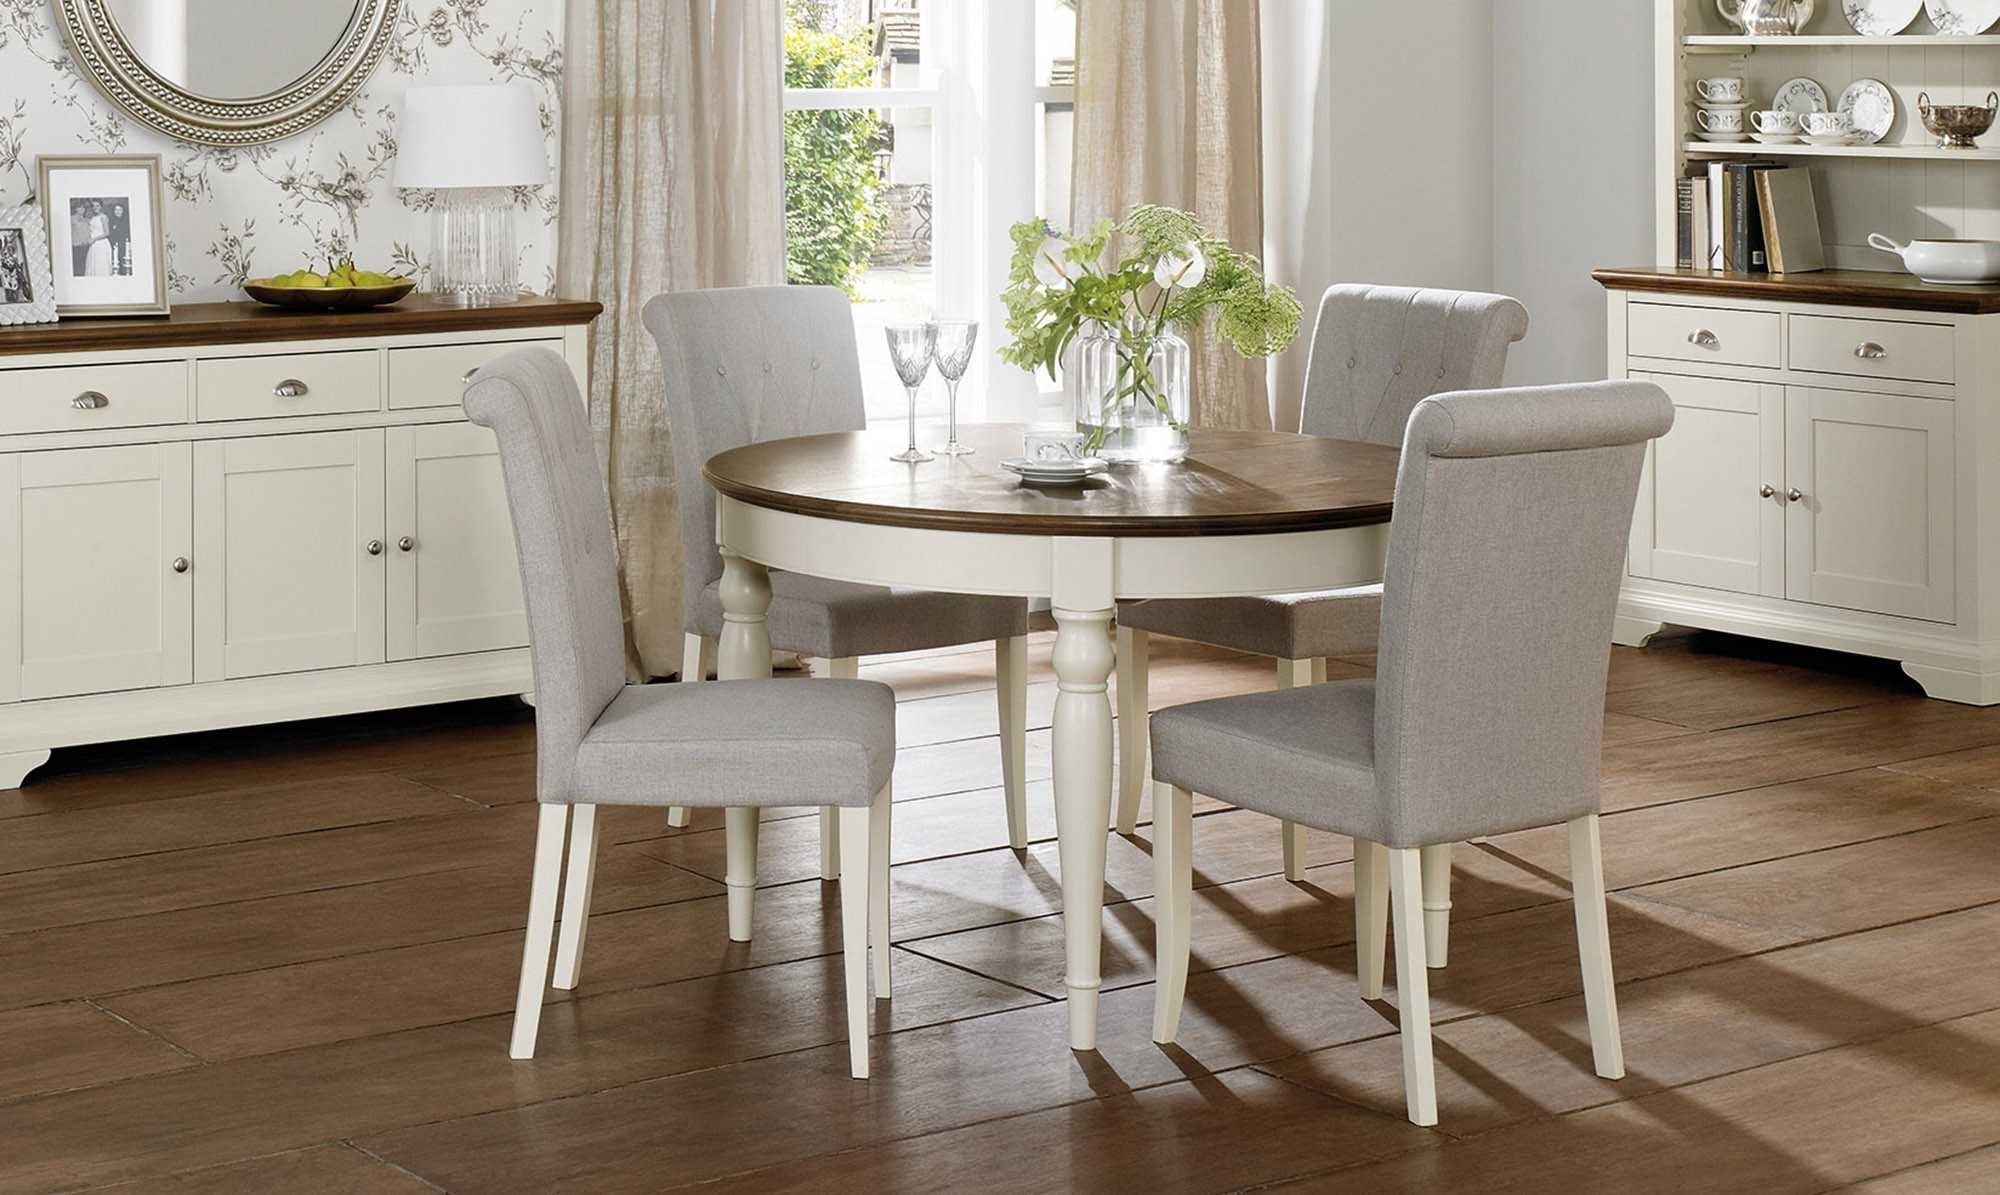 Widely Used Round Extending Dining Table Sets – Castrophotos For Extending Dining Tables Set (View 25 of 25)